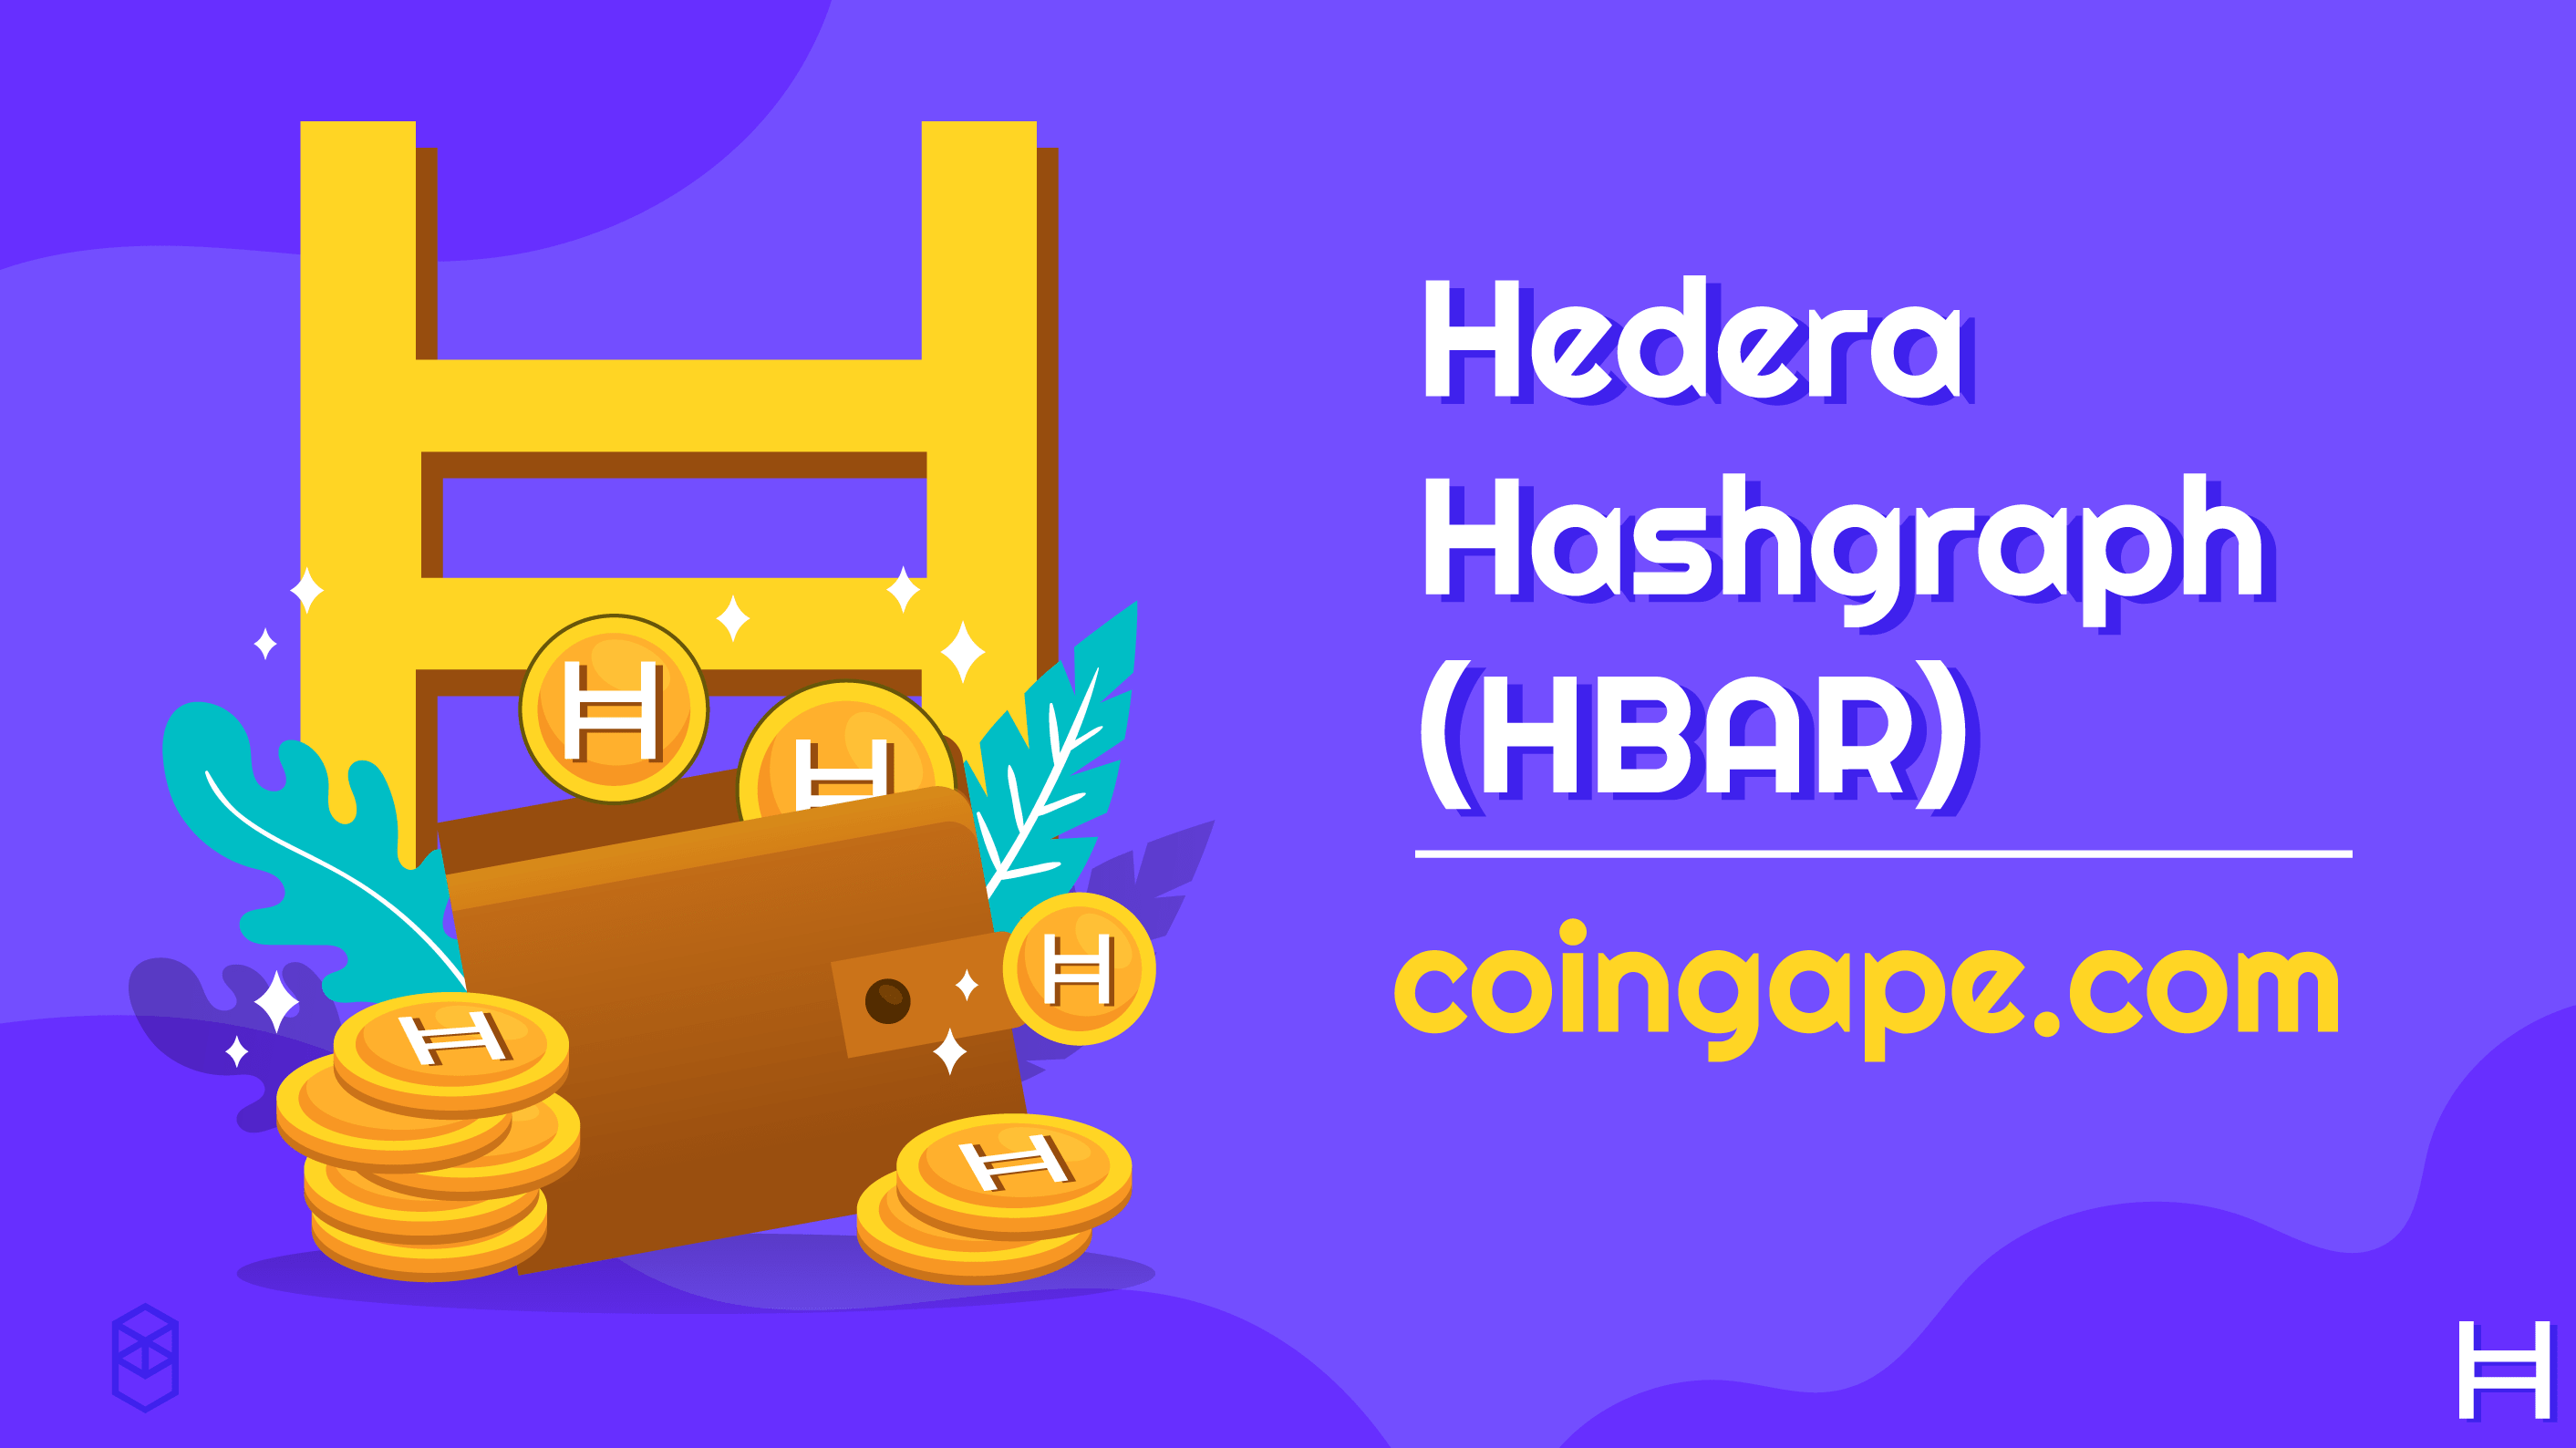 HBAR Price Prediction: Hedera Hashgraph (HBAR) In Full Moon Mode As Price Confirms Hidden Bullish Divergence On The Weekly Charts